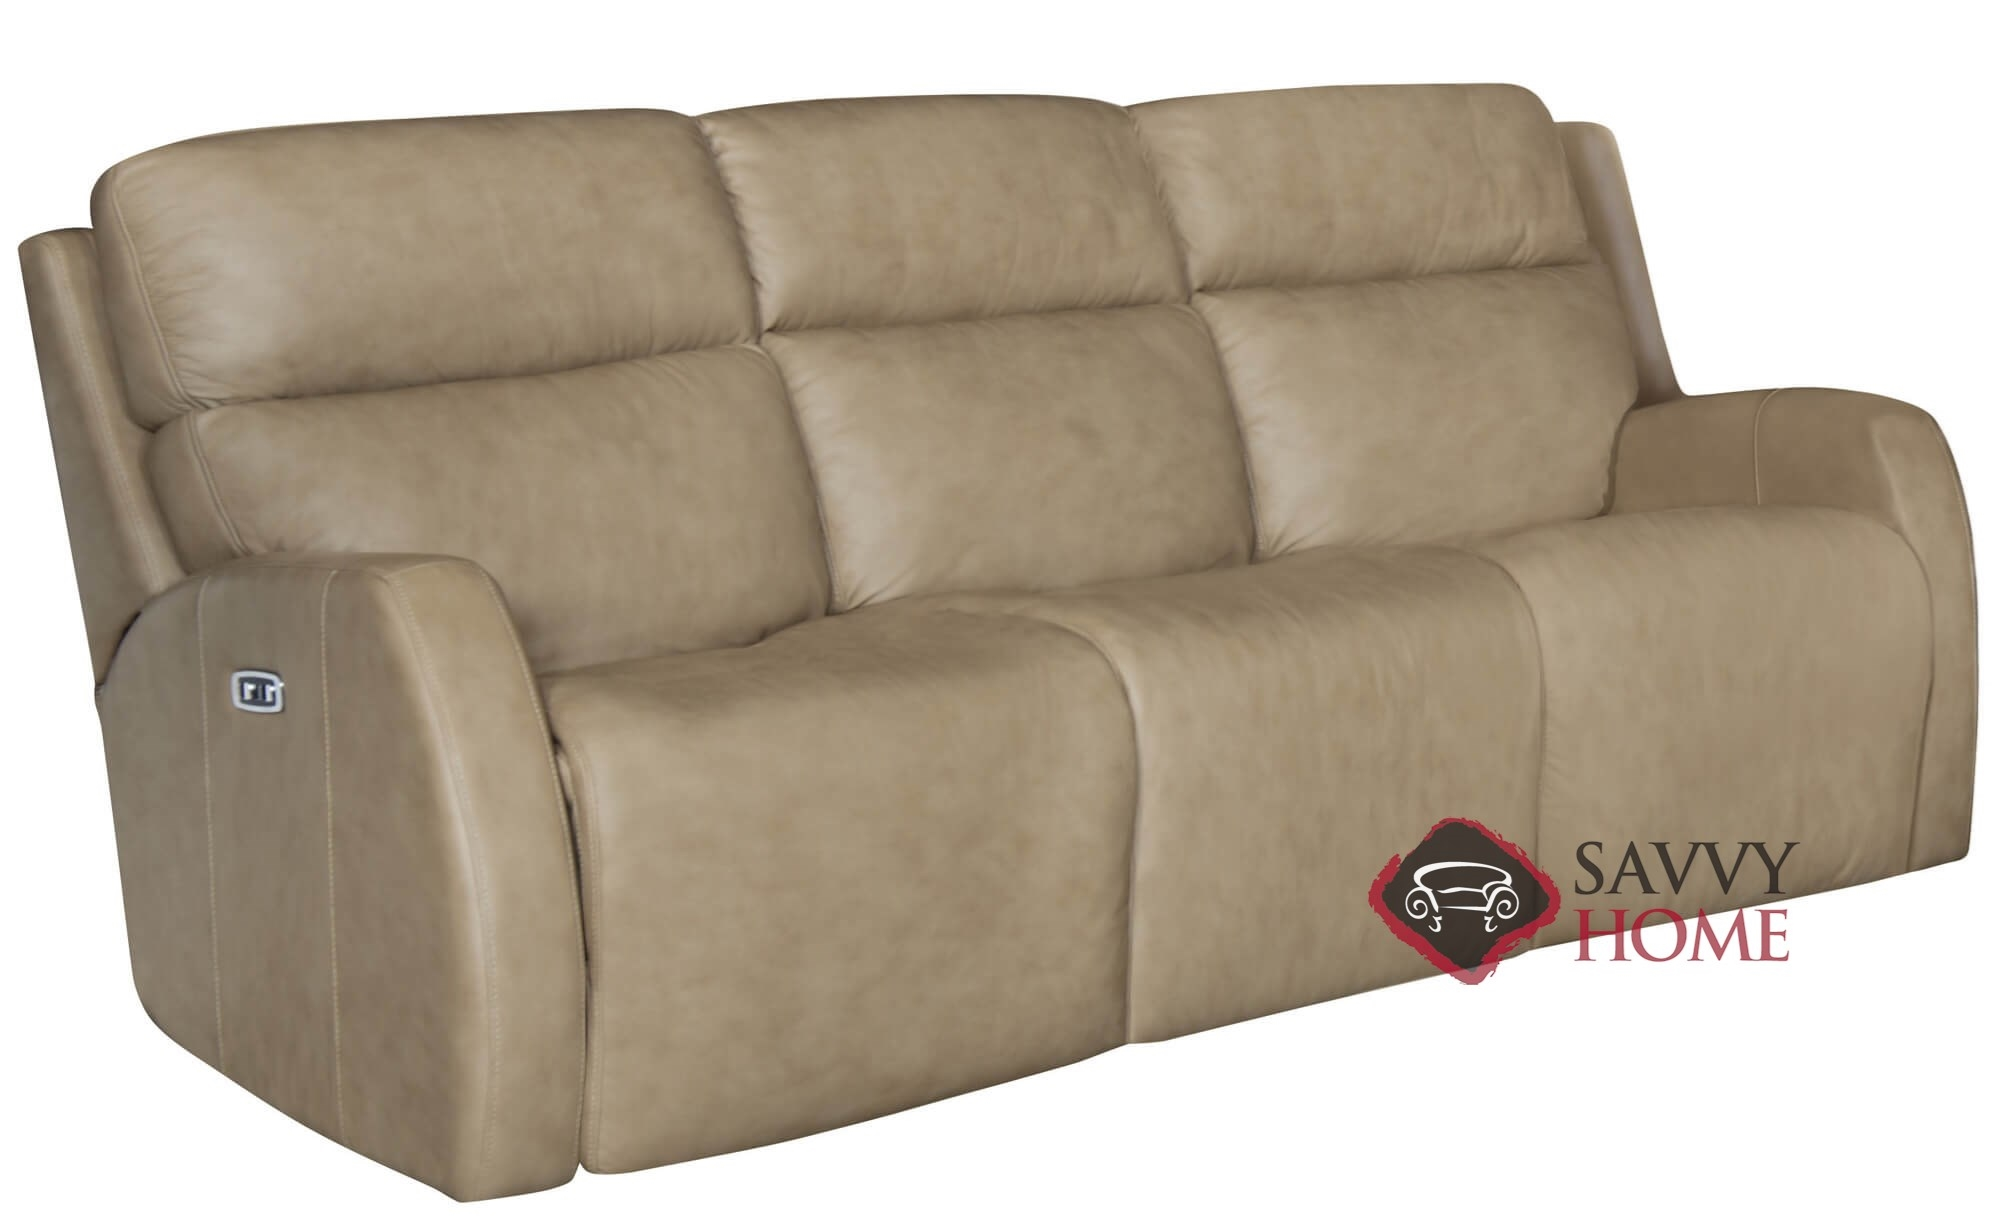 Fabulous Quick Ship Aaron By Bernhardt Leather Reclining Sofa In By Bernhardt With Fast Shipping Savvyhomestore Com Forskolin Free Trial Chair Design Images Forskolin Free Trialorg